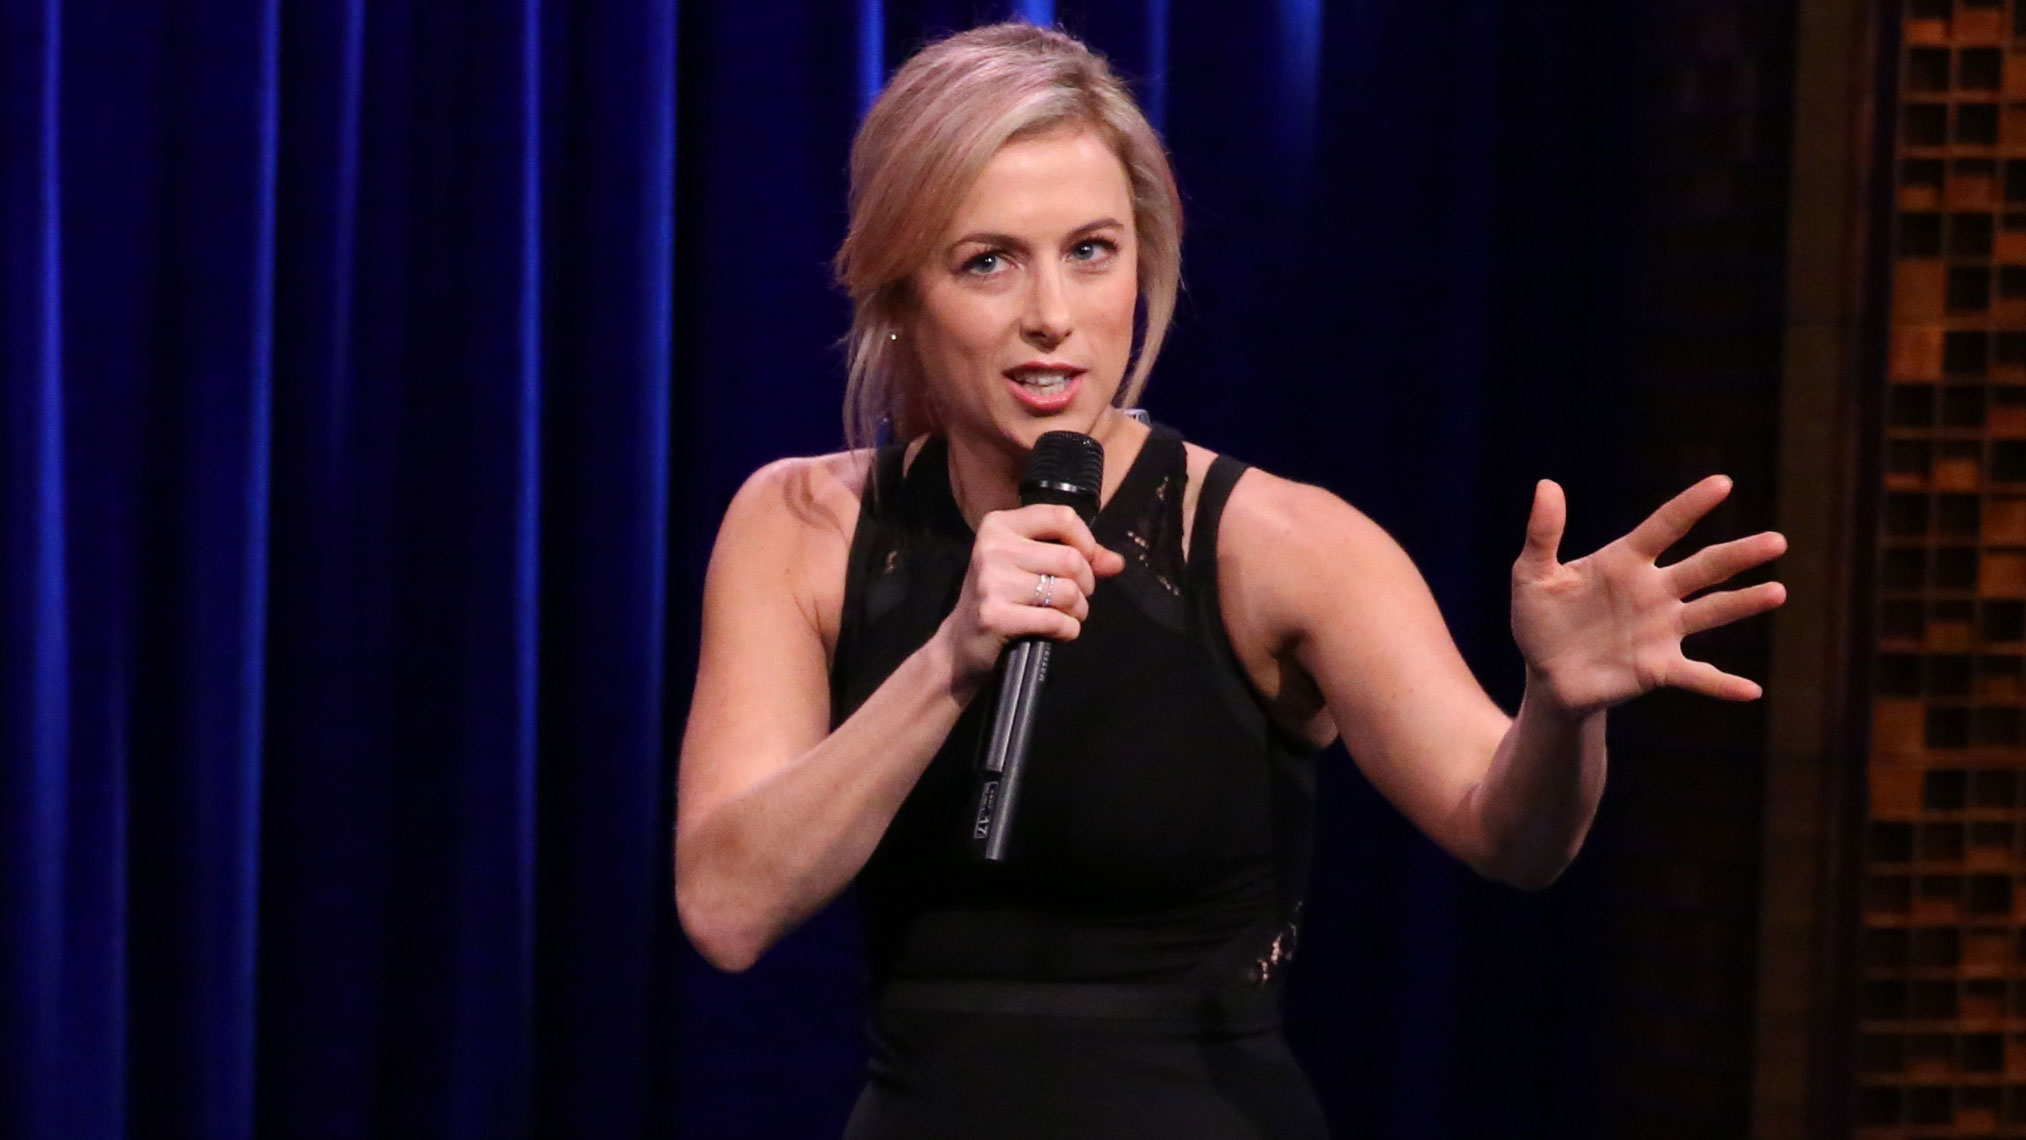 iliza shlesinger freezing hot dating 5 times iliza shlesinger's netflix comedy special was too real from now on, i don't wanna hear any more woman talk about how they wanna be mermaid.